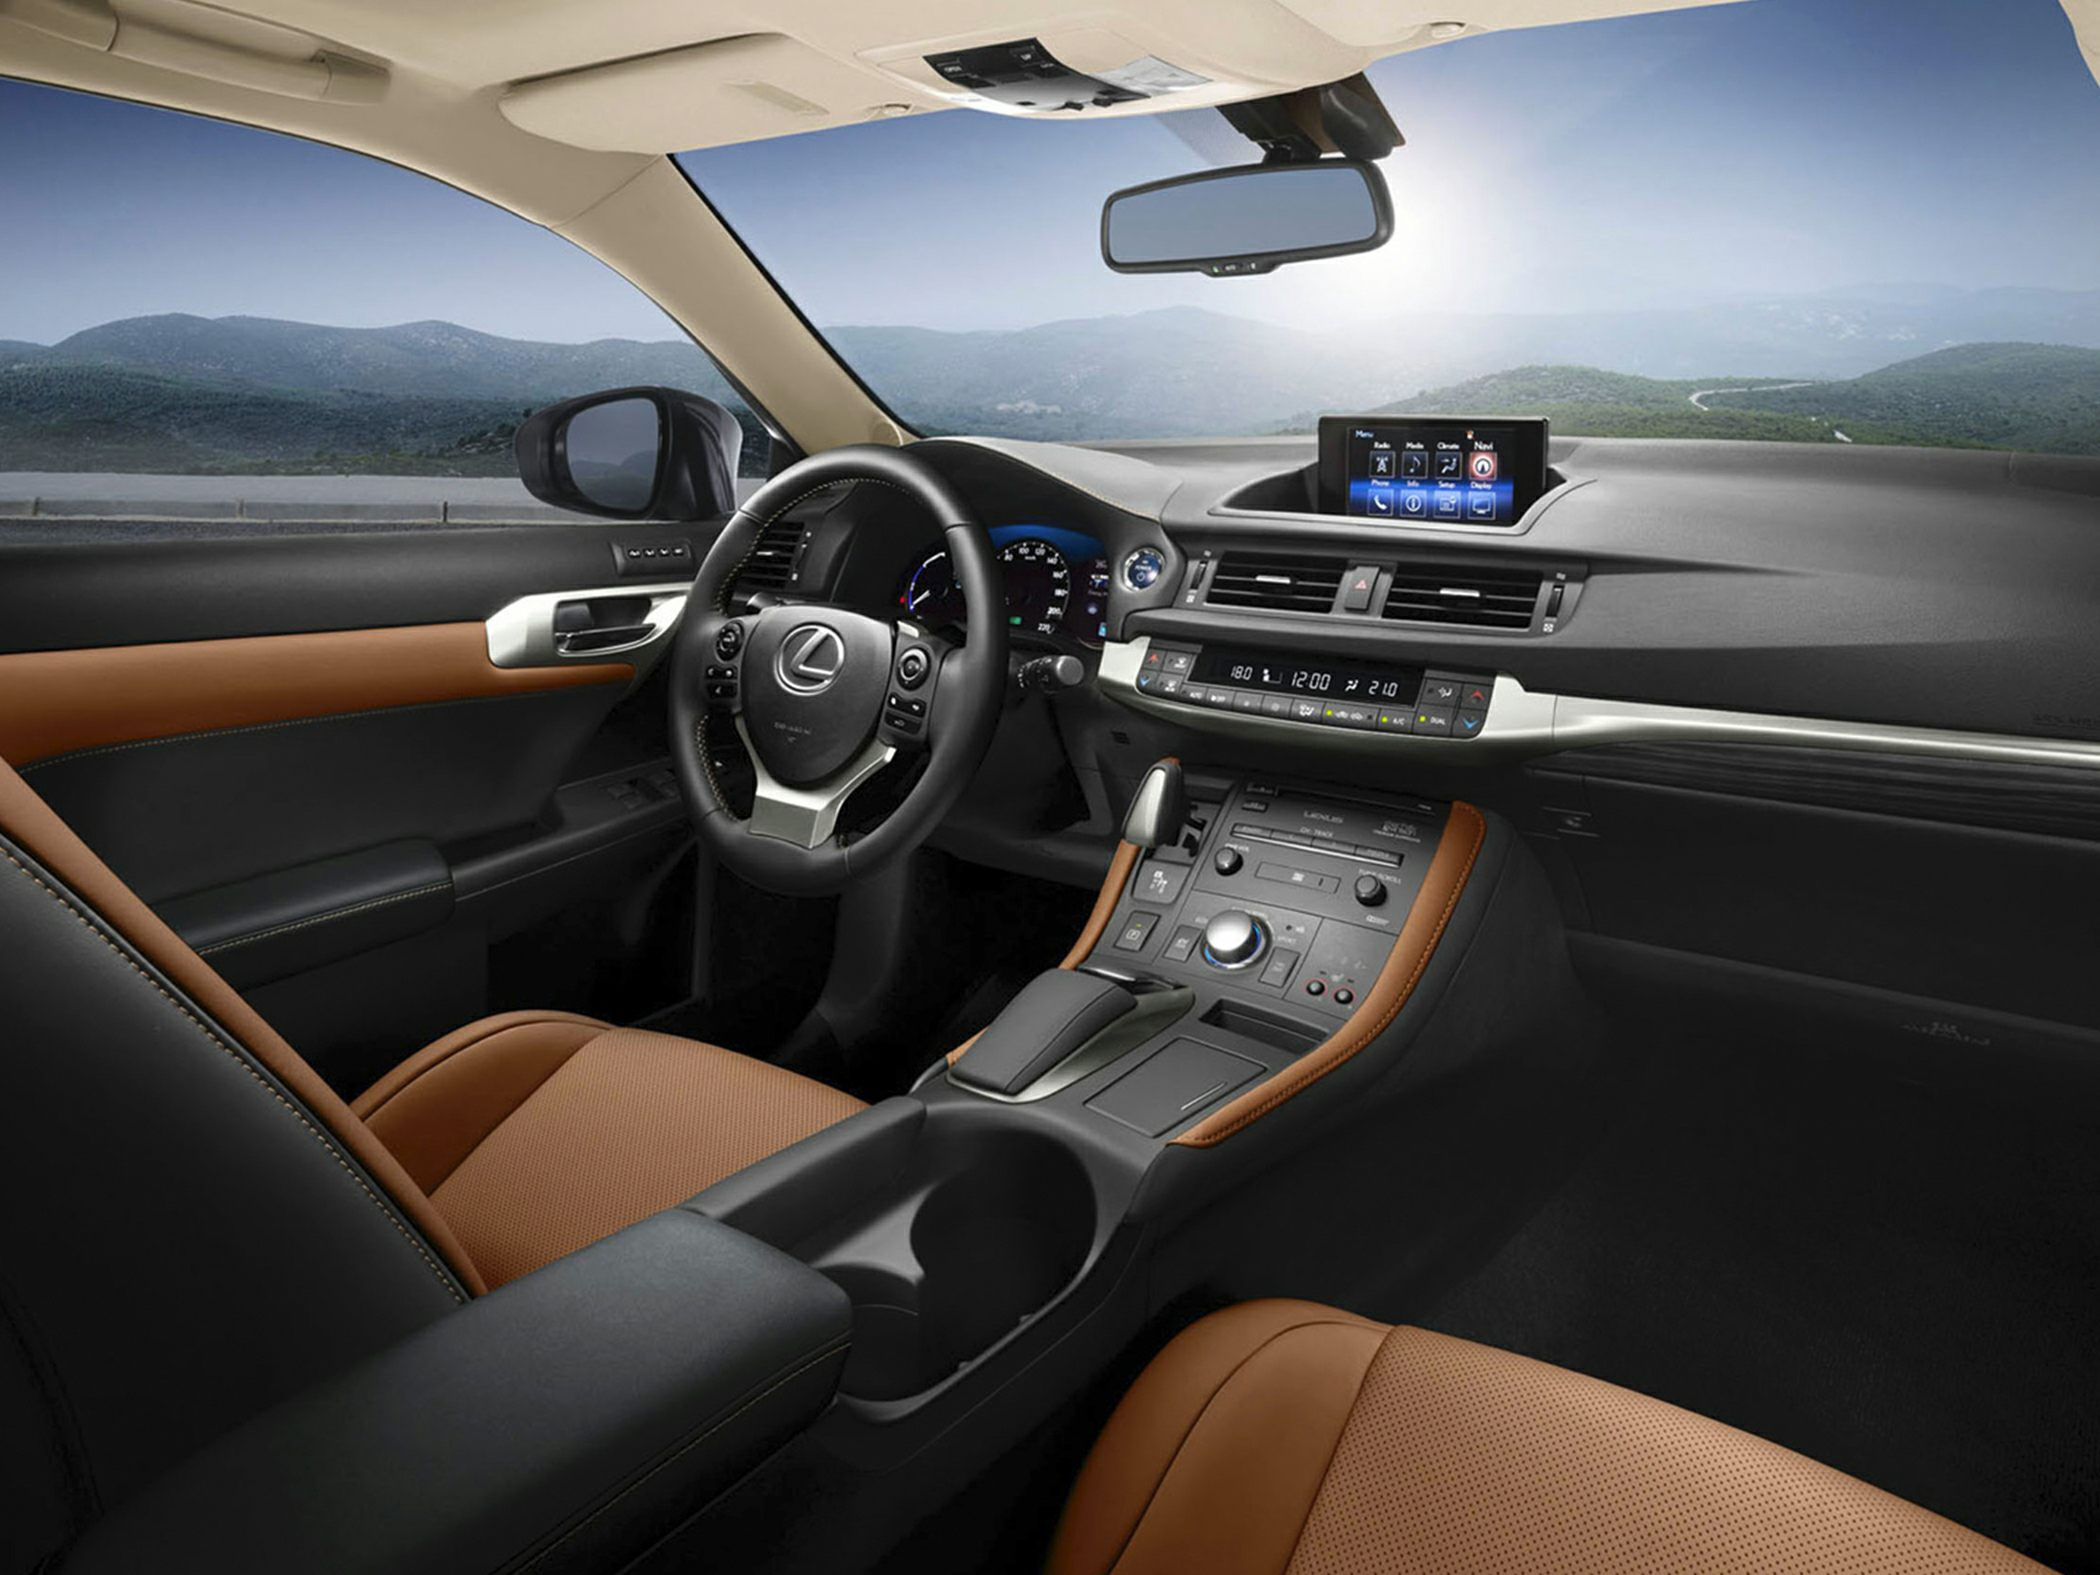 2015 Lexus CT 200h Interior